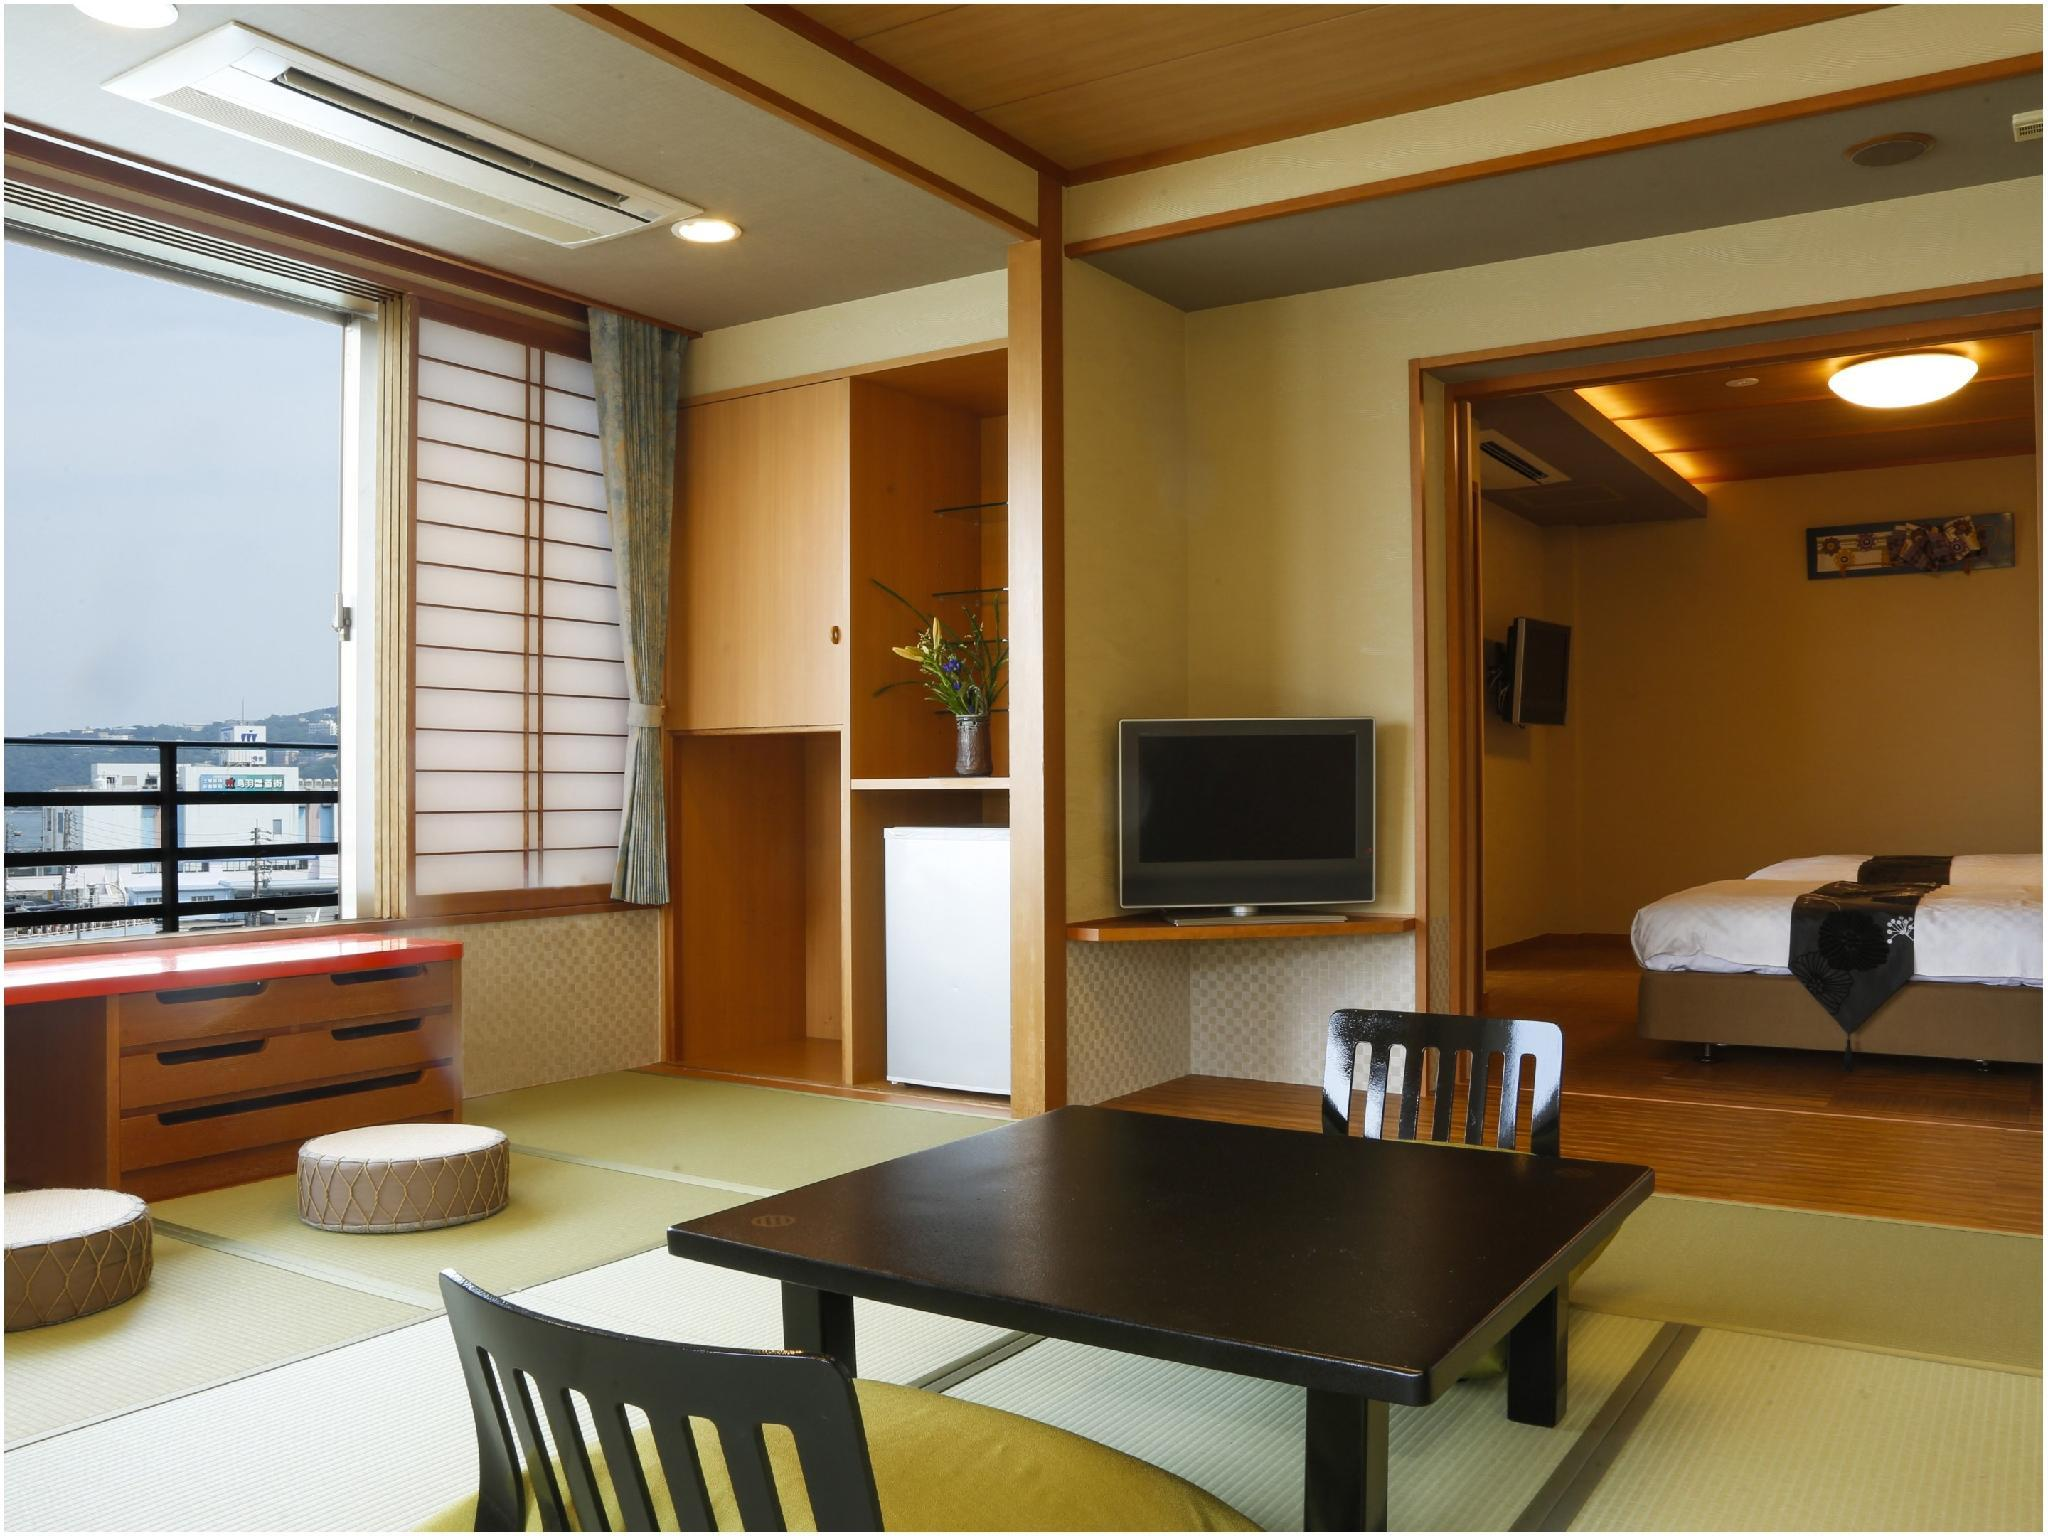 Deluxe Japanese/Western-style Room (South Wing)